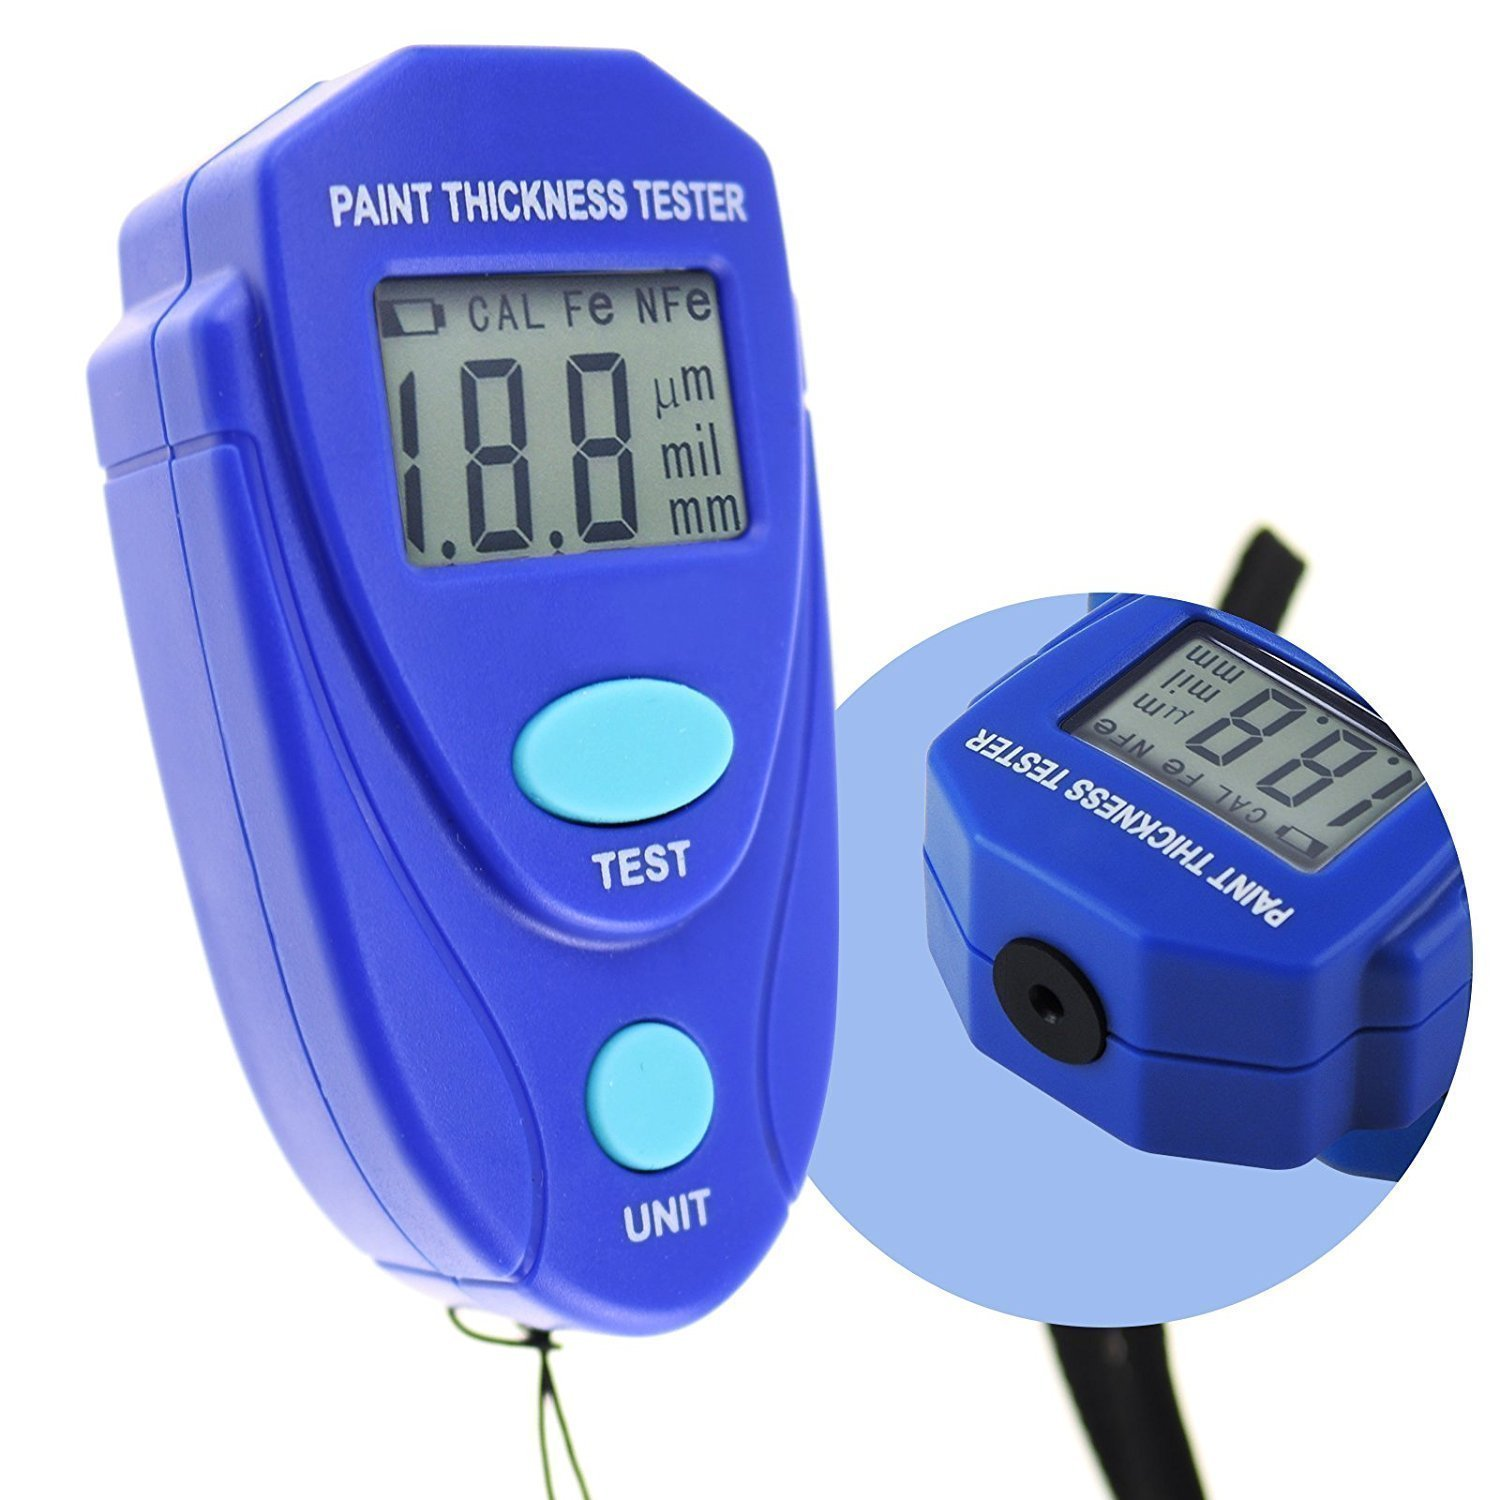 KKmoon Mini Digital Thickness Gauge with LCD Display Paint Thickness Gauge Tester Tool EM2271 for Car